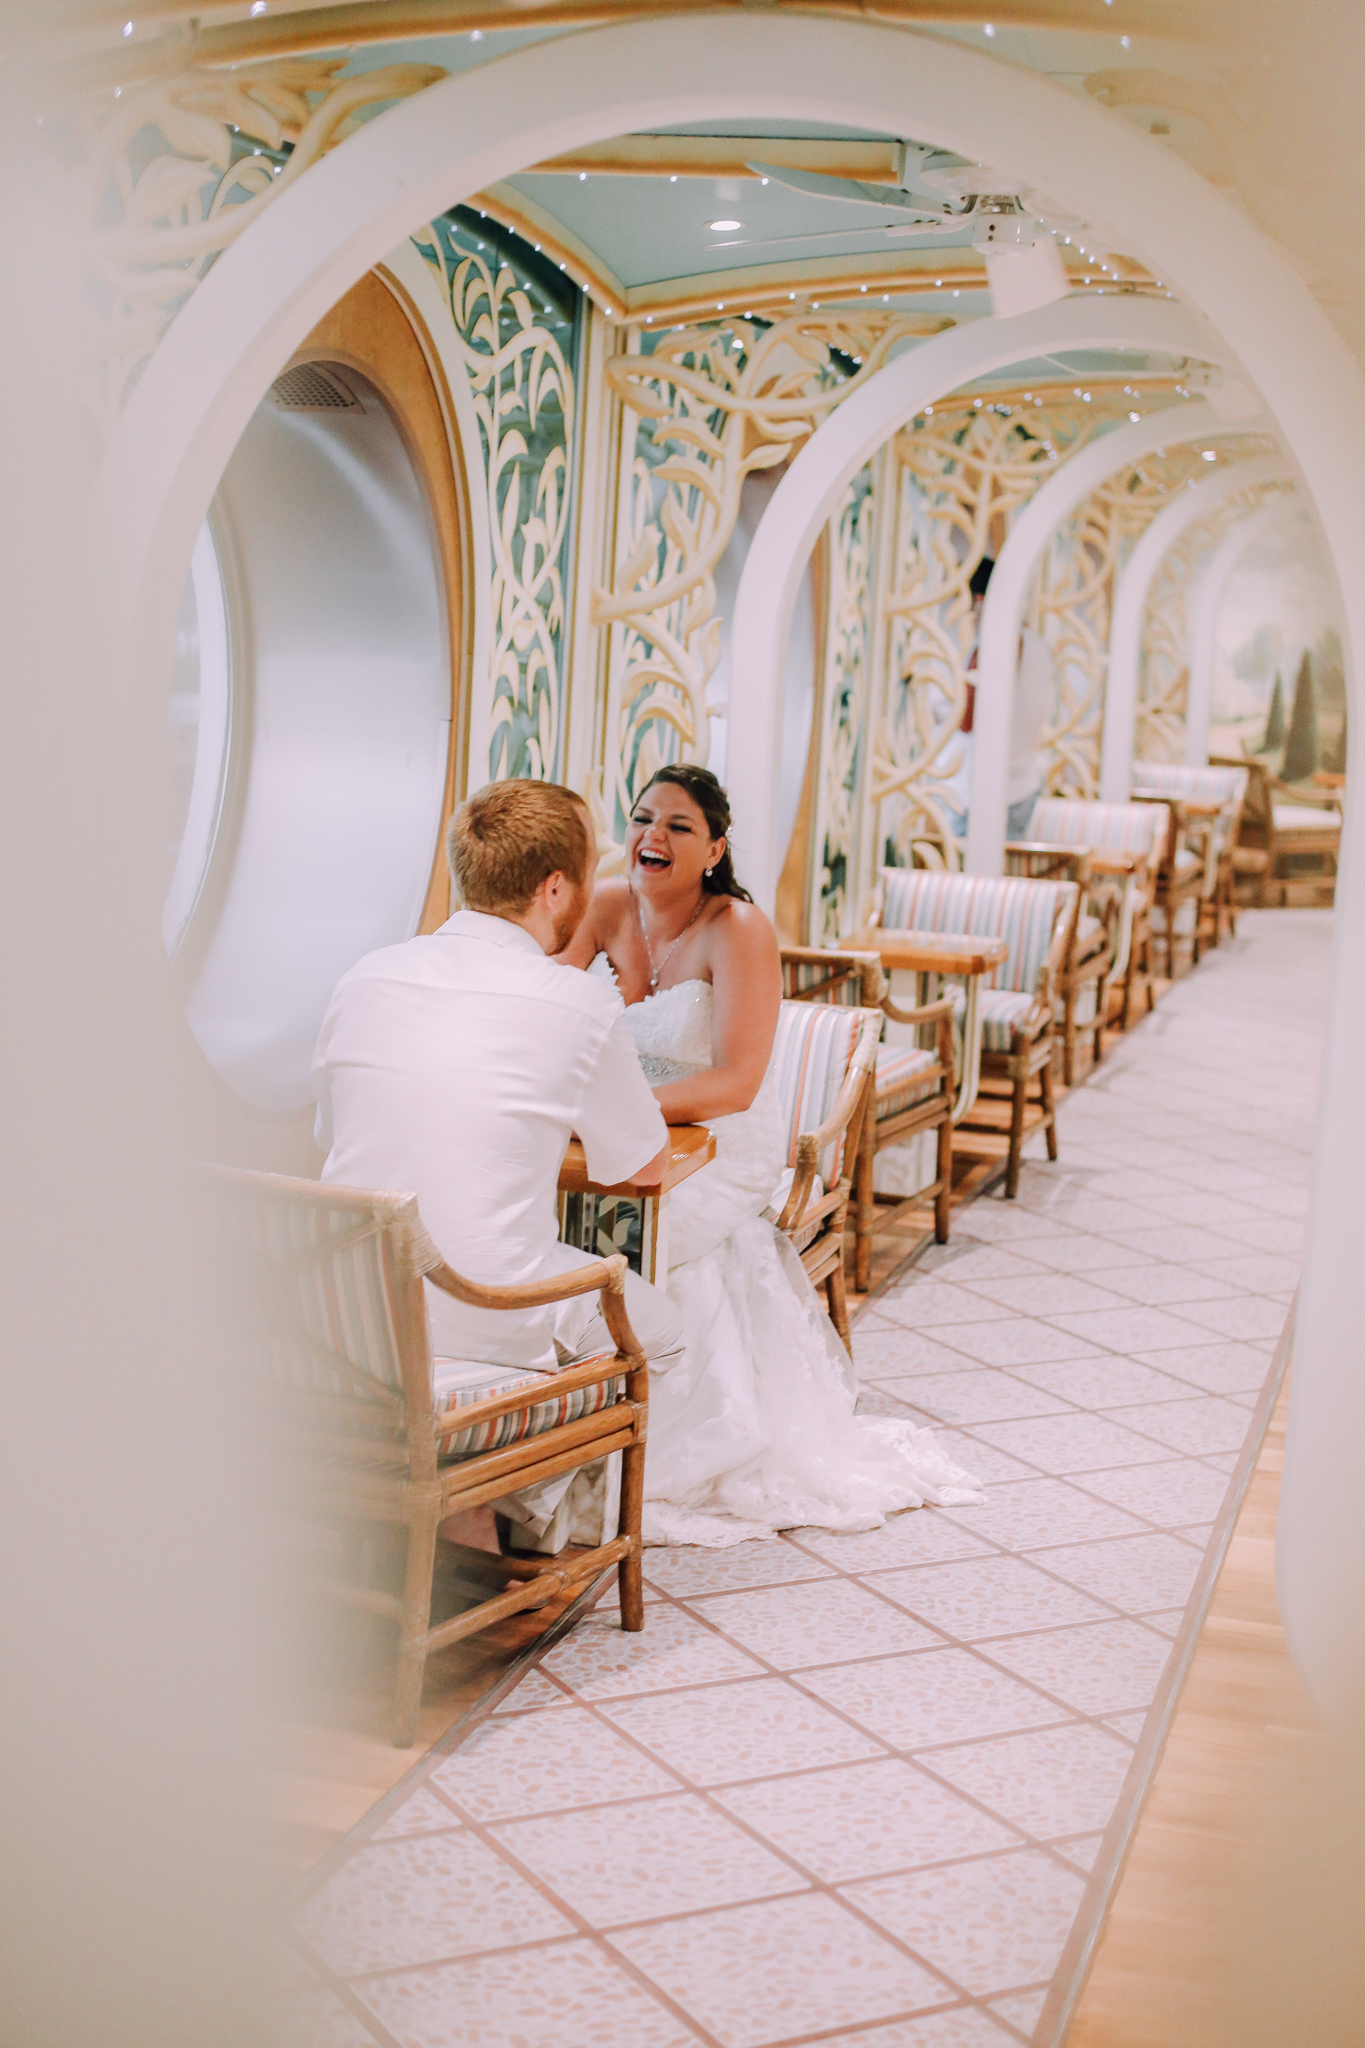 Tiffany and Ryan - Puerto Vallarta Wedding Photographer - 114.jpg